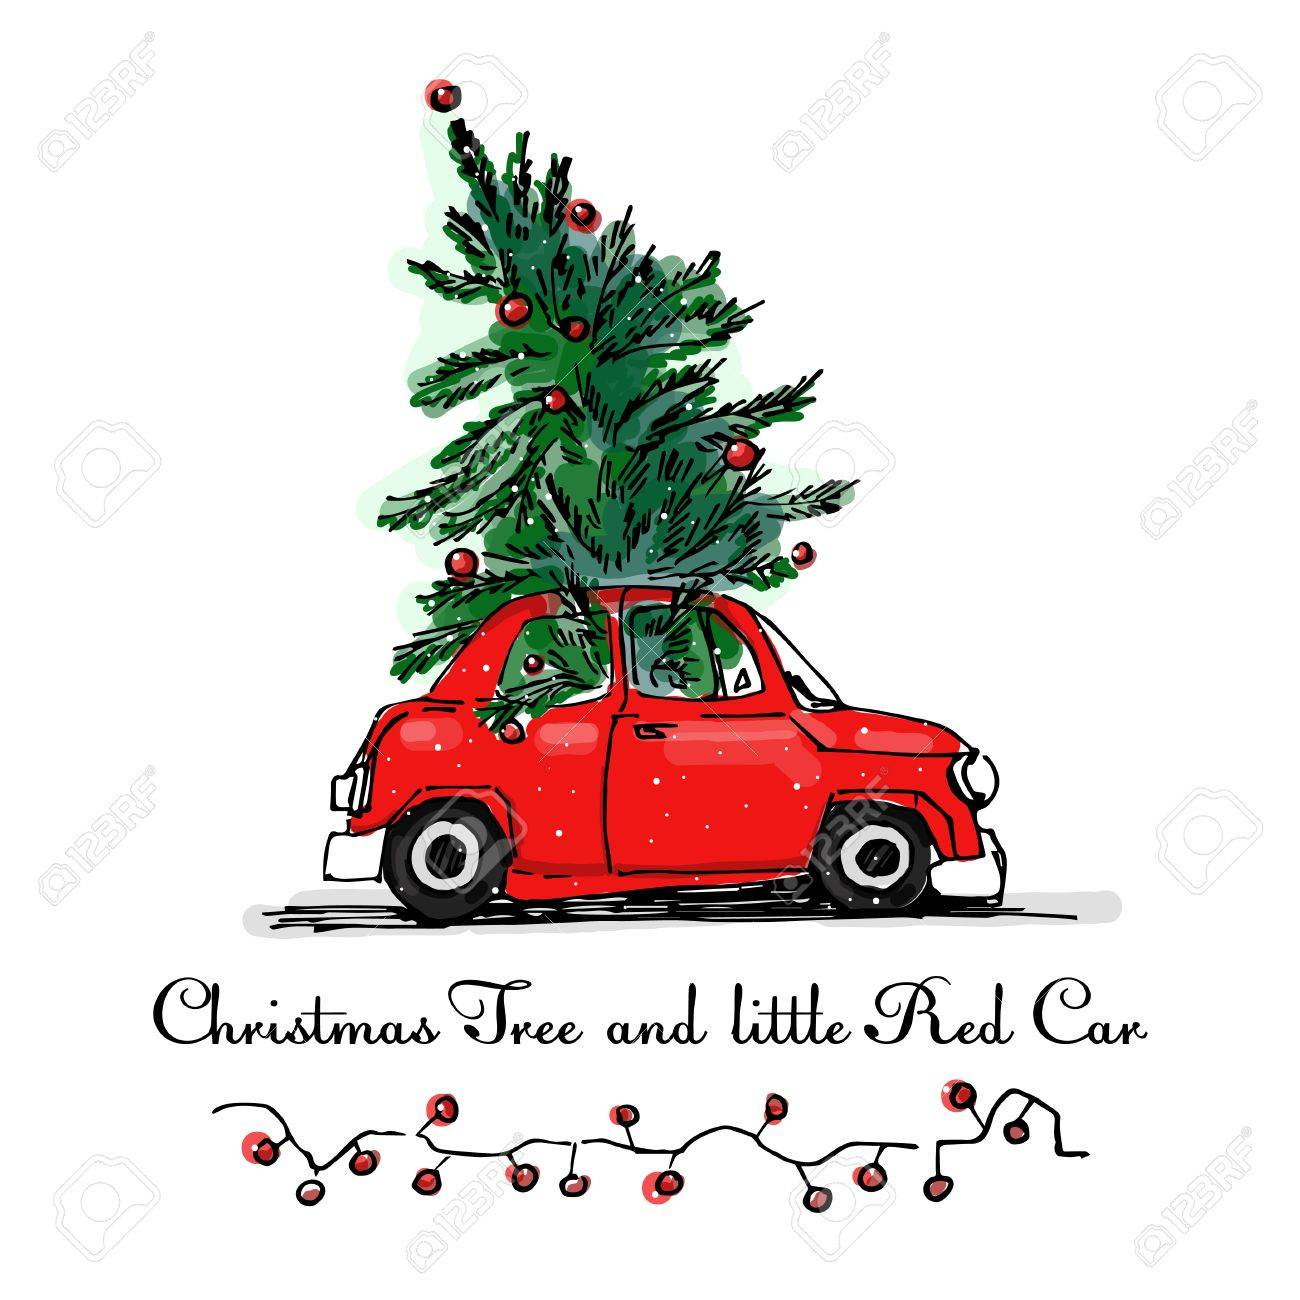 Christmas Tree Vector Image.Red Car And Christmas Tree Vector Card X Mas Cartoon Illustration